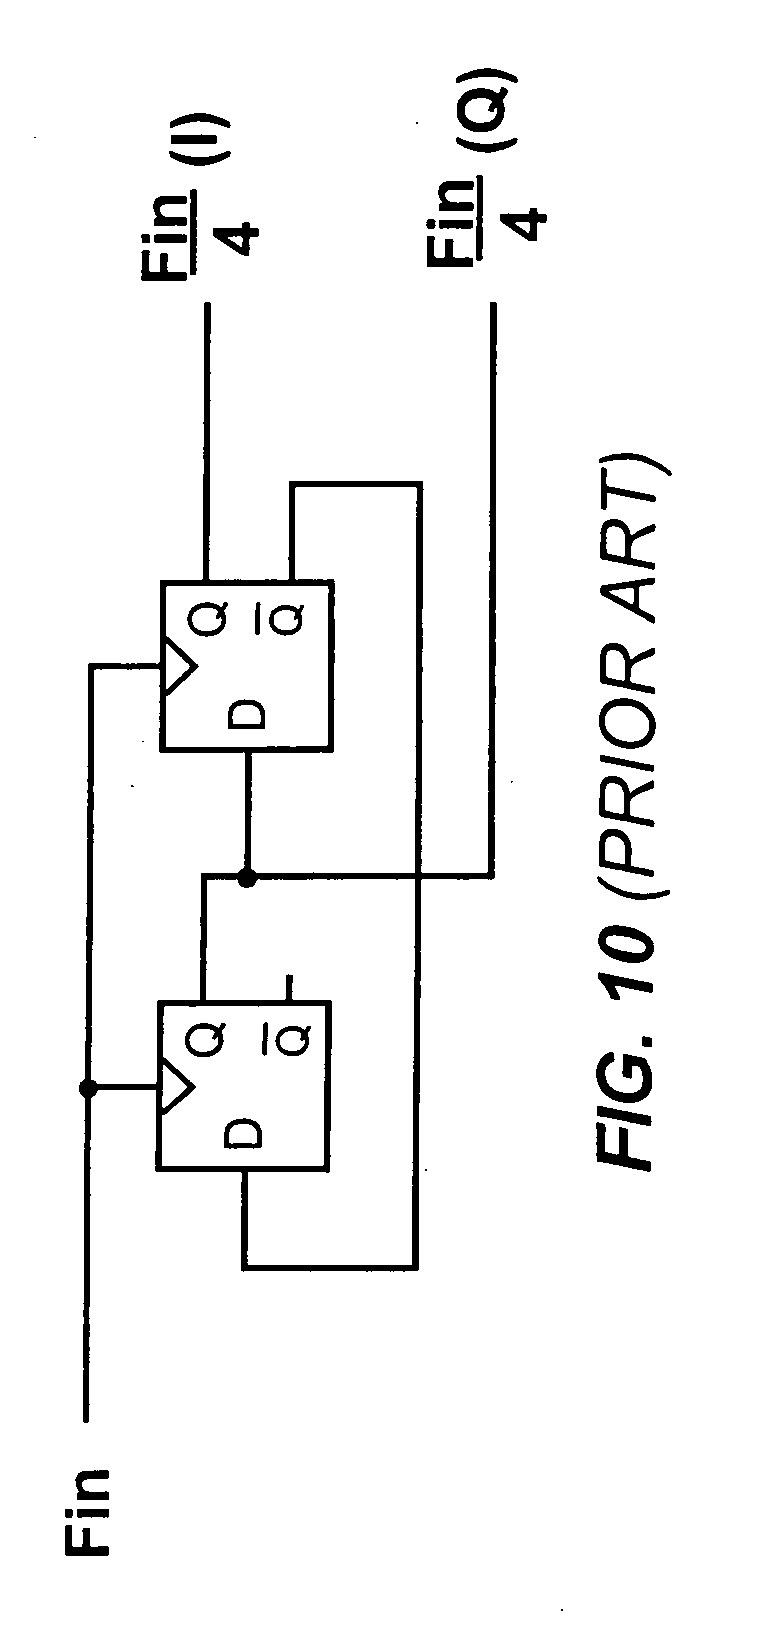 Patente Us20060057996 High Frequency Low Noise Phase The Circuit Below Shows All Of These Improvements Heterodyne Patent Drawing